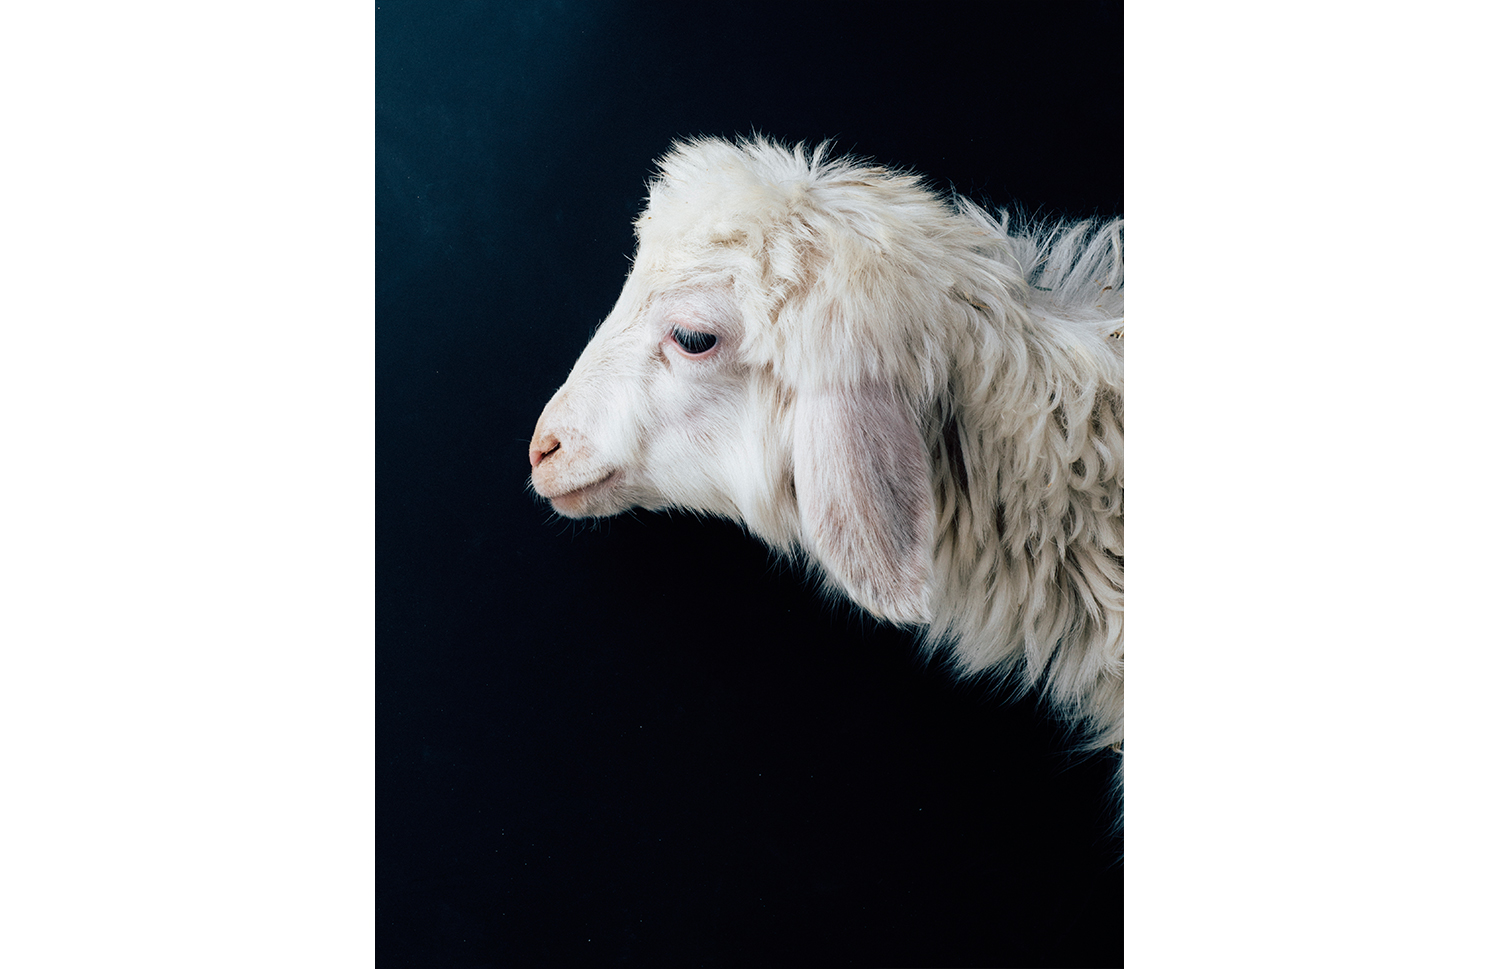 ijfkeridgley-oman-goat-portrait12.jpg